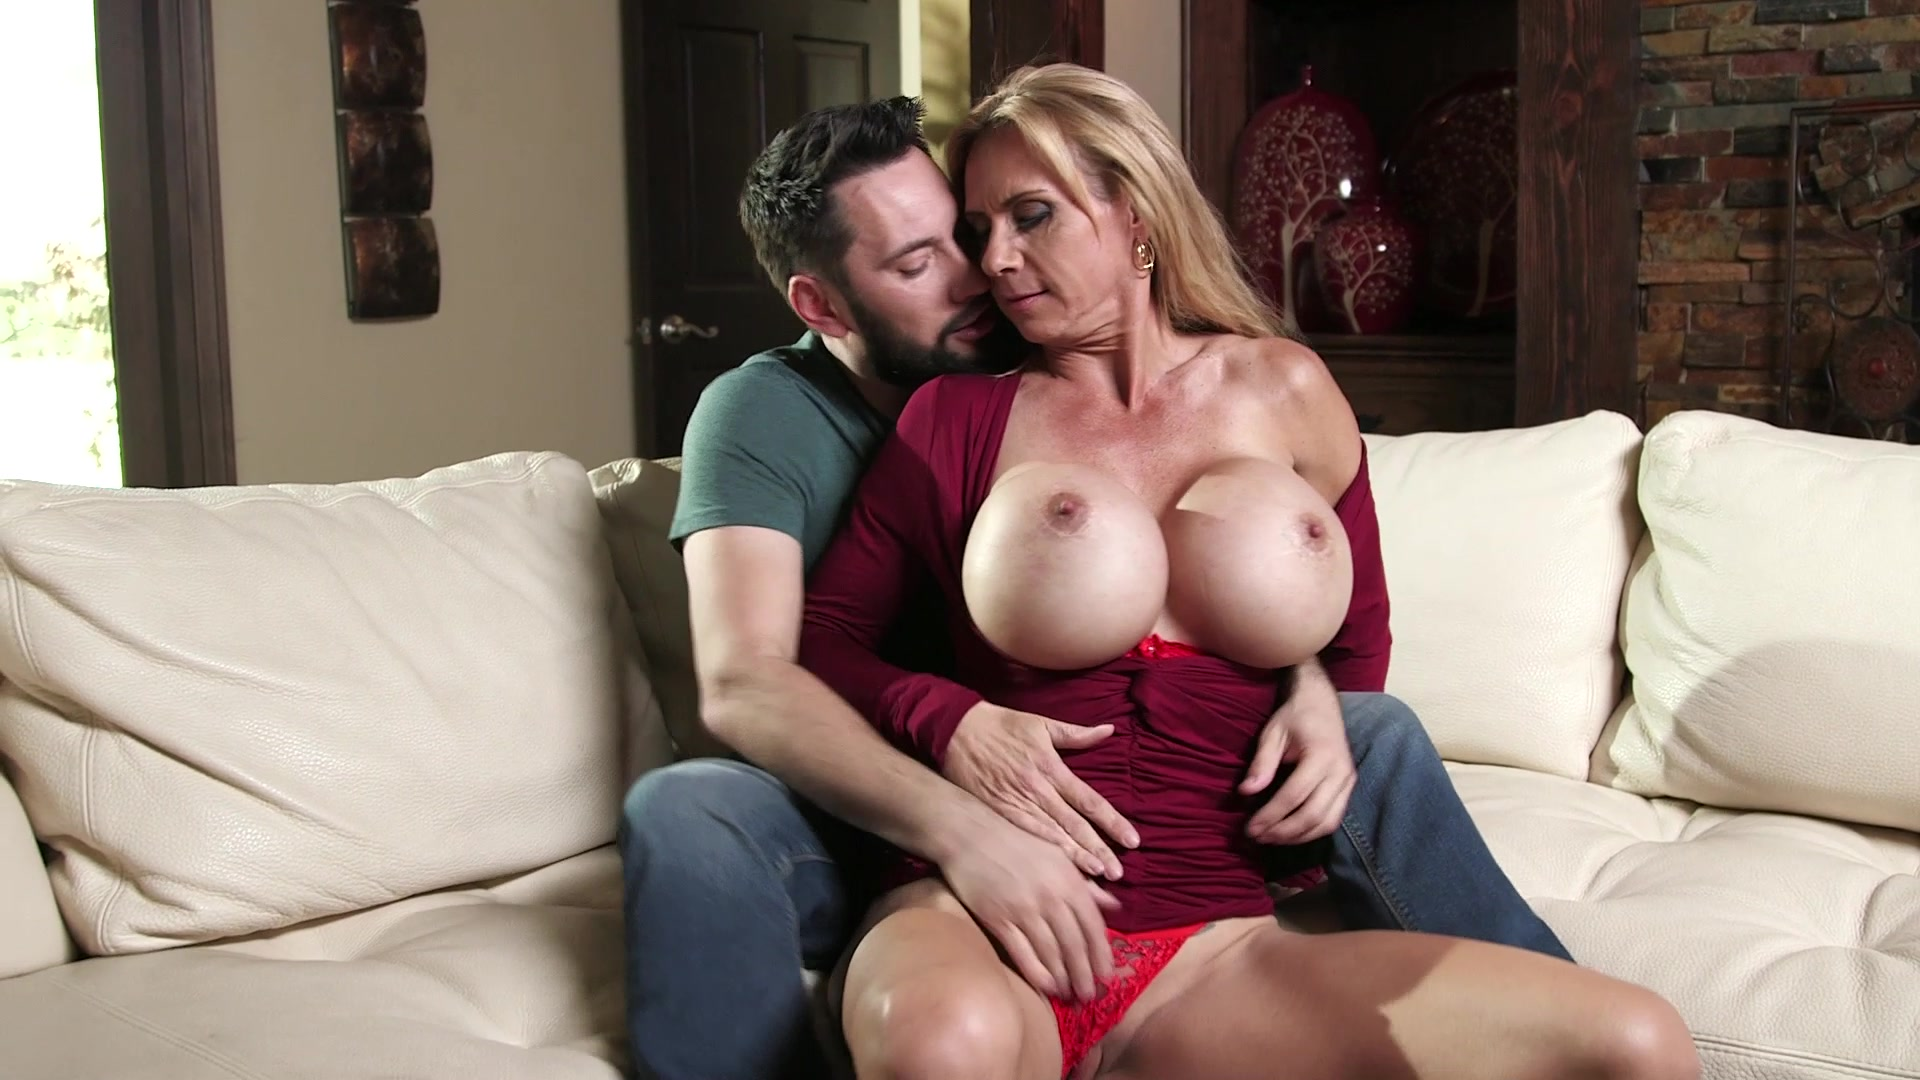 I Love My Moms Big Tits 2 2016 Videos On Demand -3876